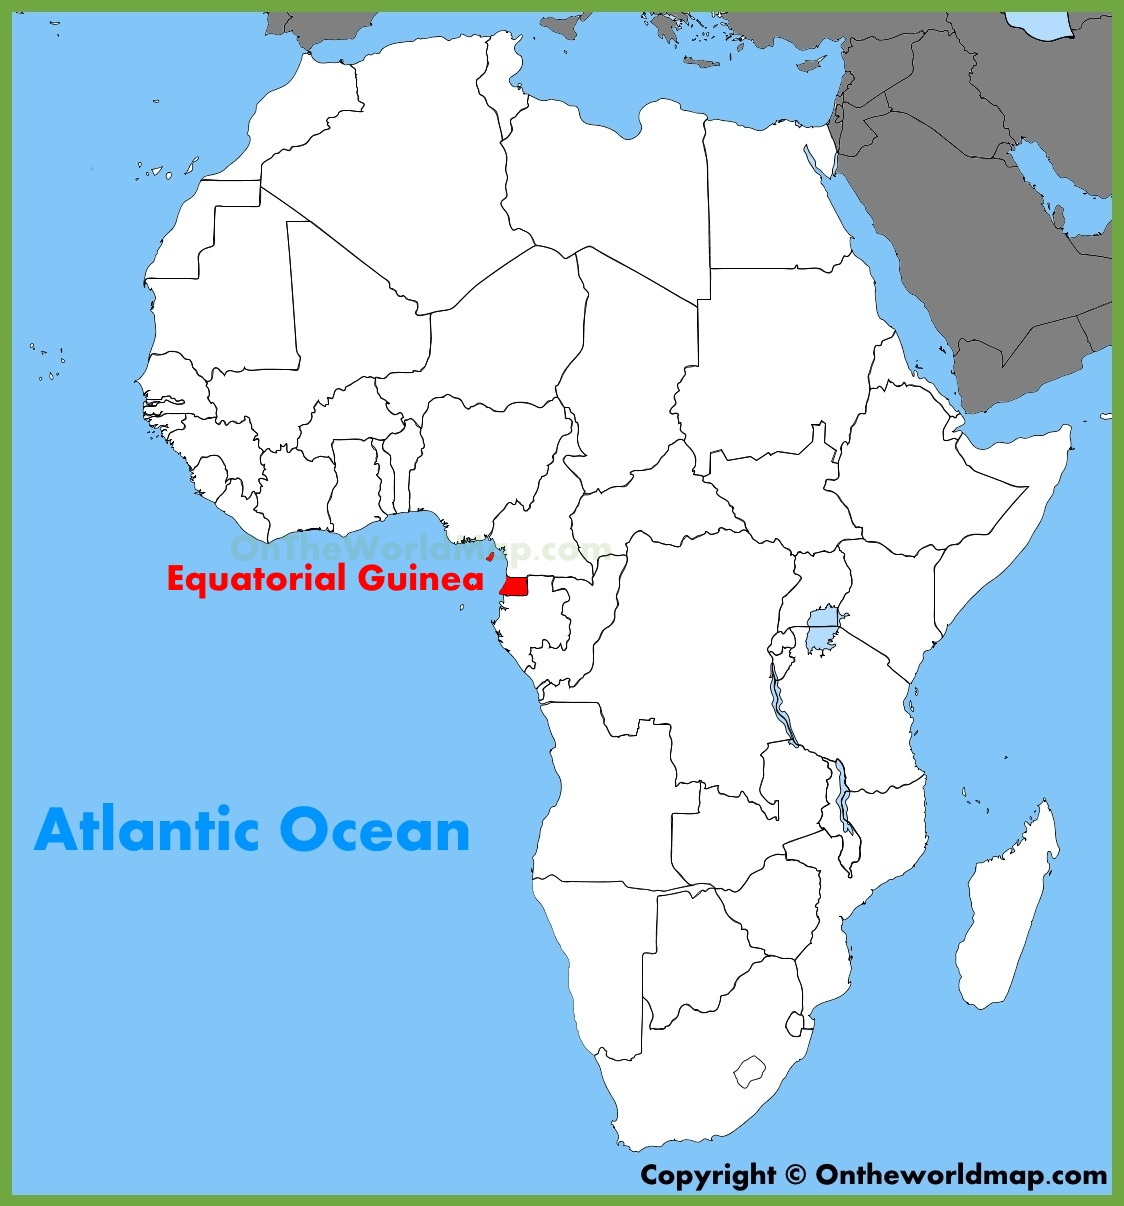 Equatorial Guinea Map Equatorial Guinea location on the Africa map